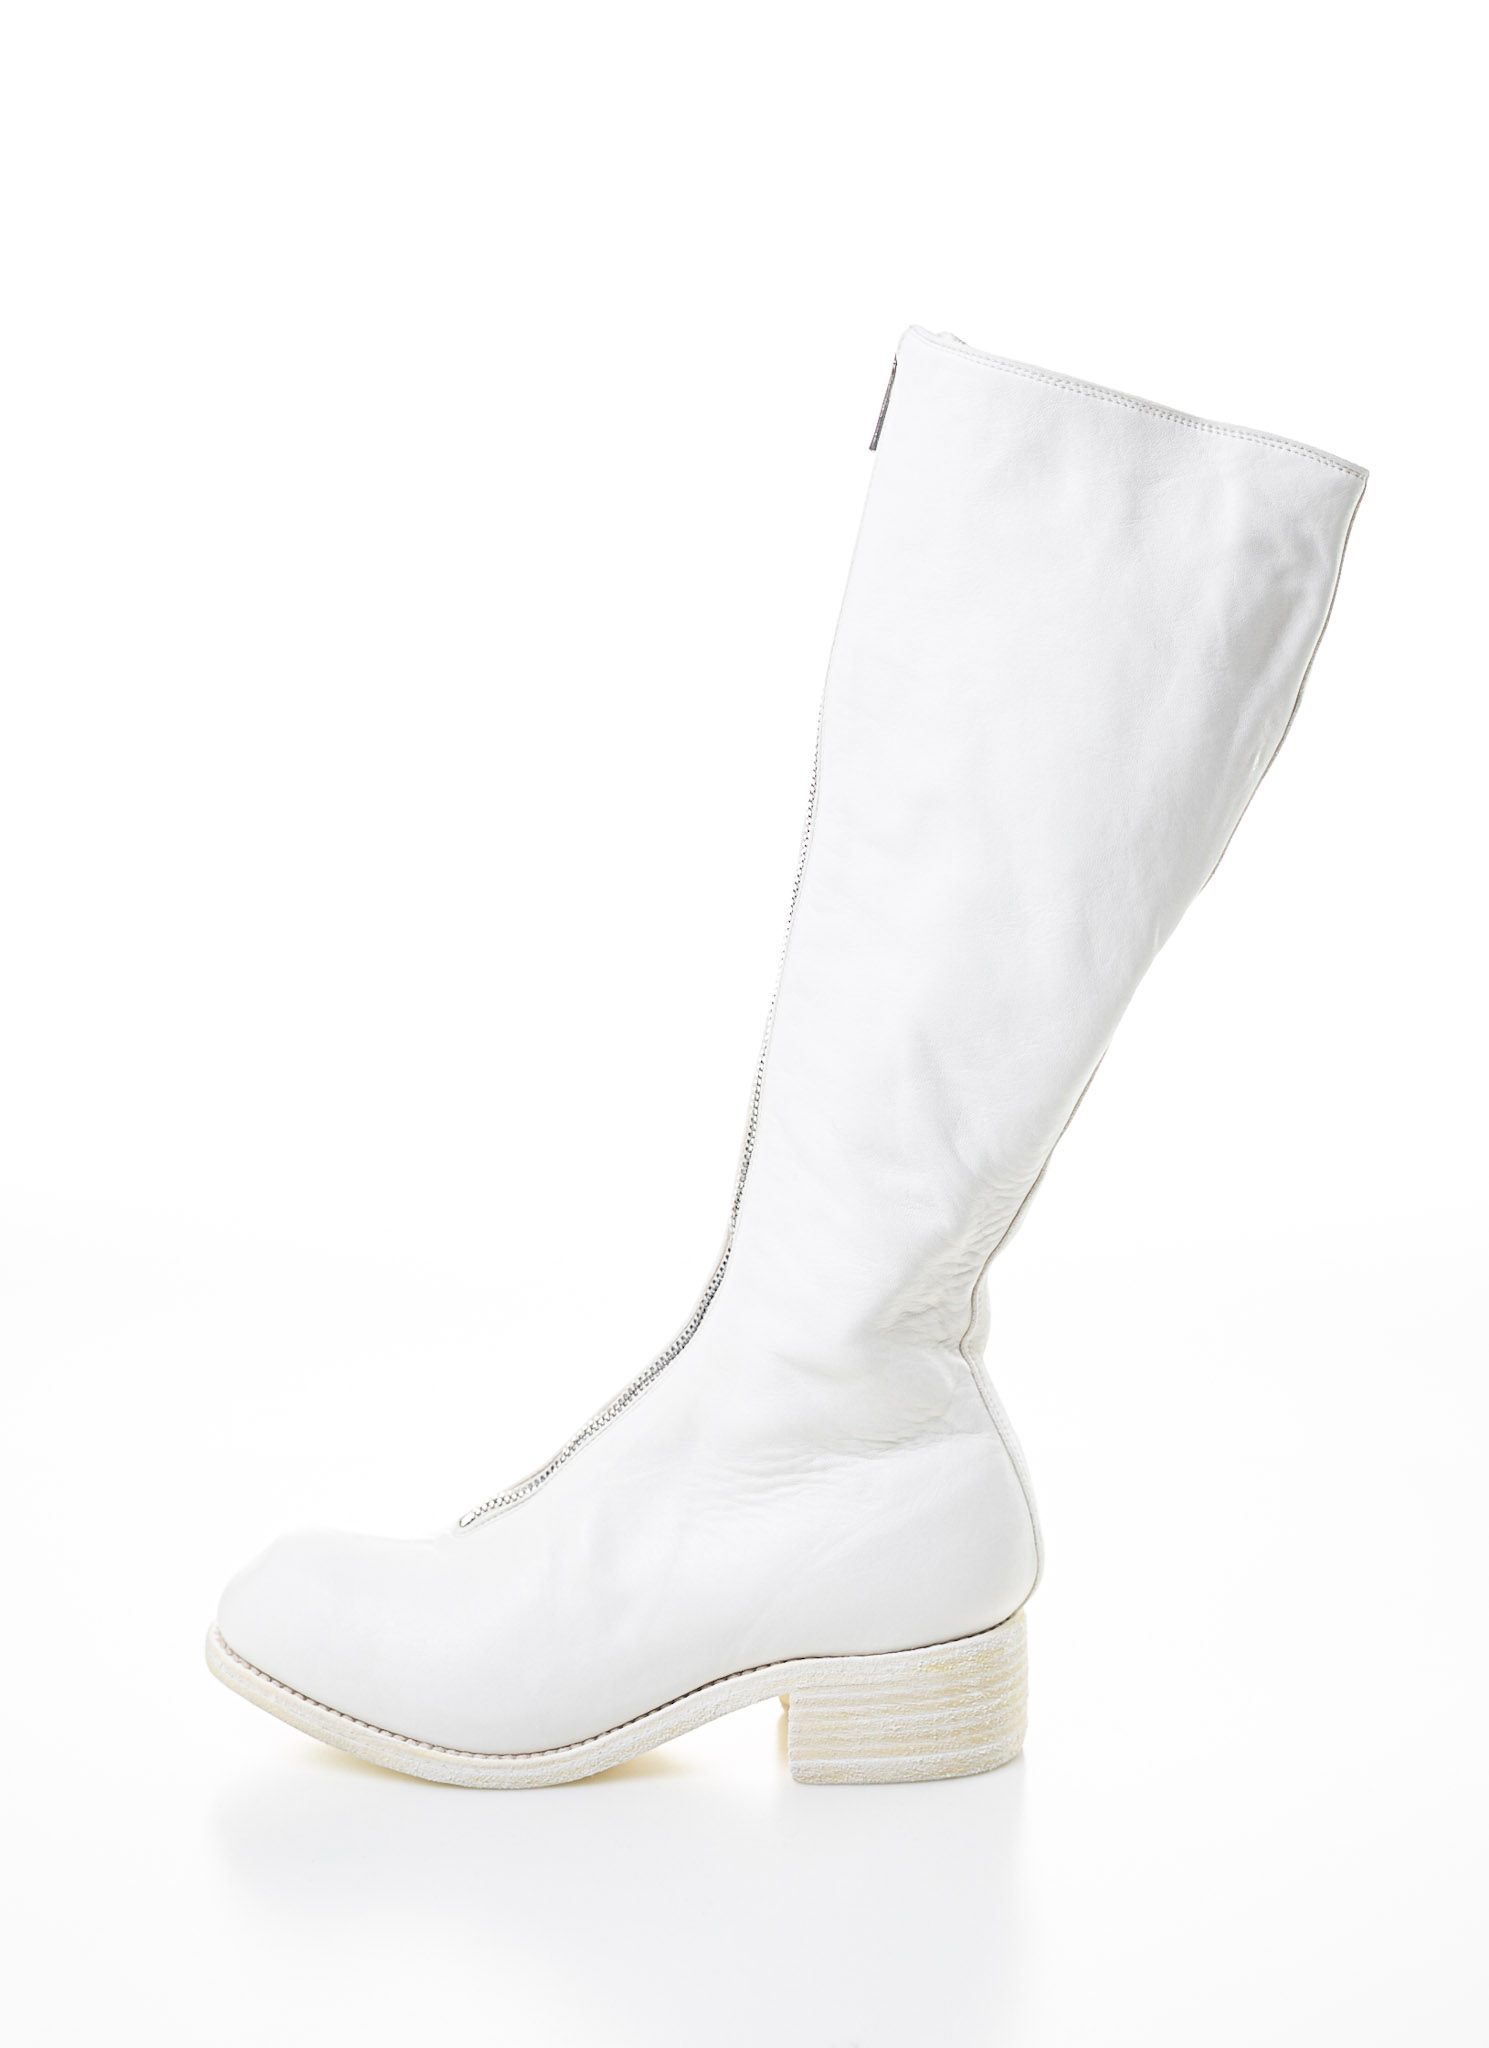 Zip GuidiPl3 Leather GuidiPl3 Front Leather GuidiPl3 Zip Front BootWhiteHorse BootWhiteHorse E2IDWH9Y